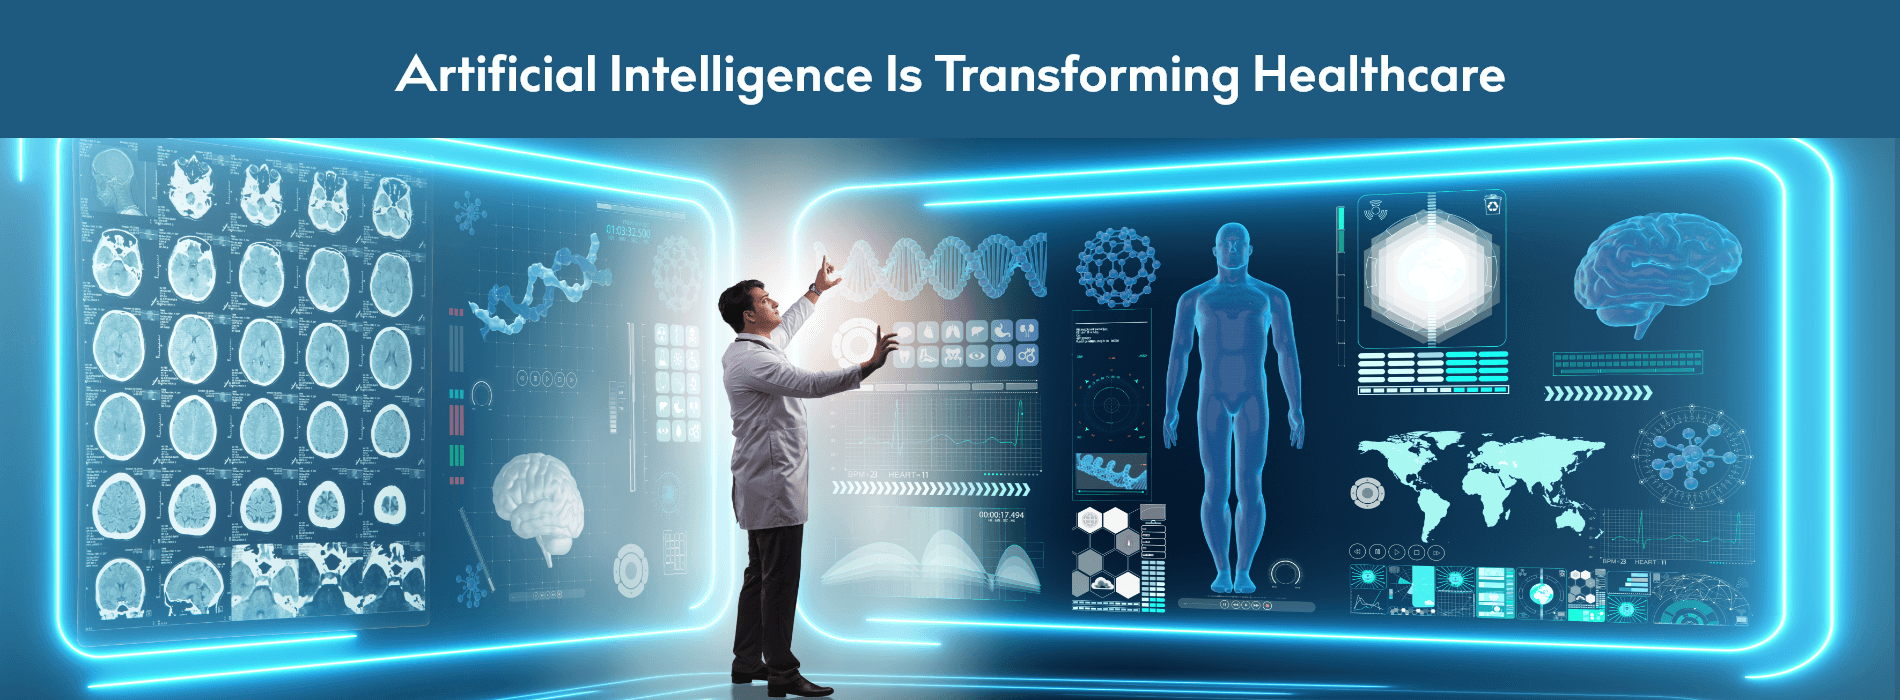 How Artificial Intelligence Is Transforming Healthcare Industry?